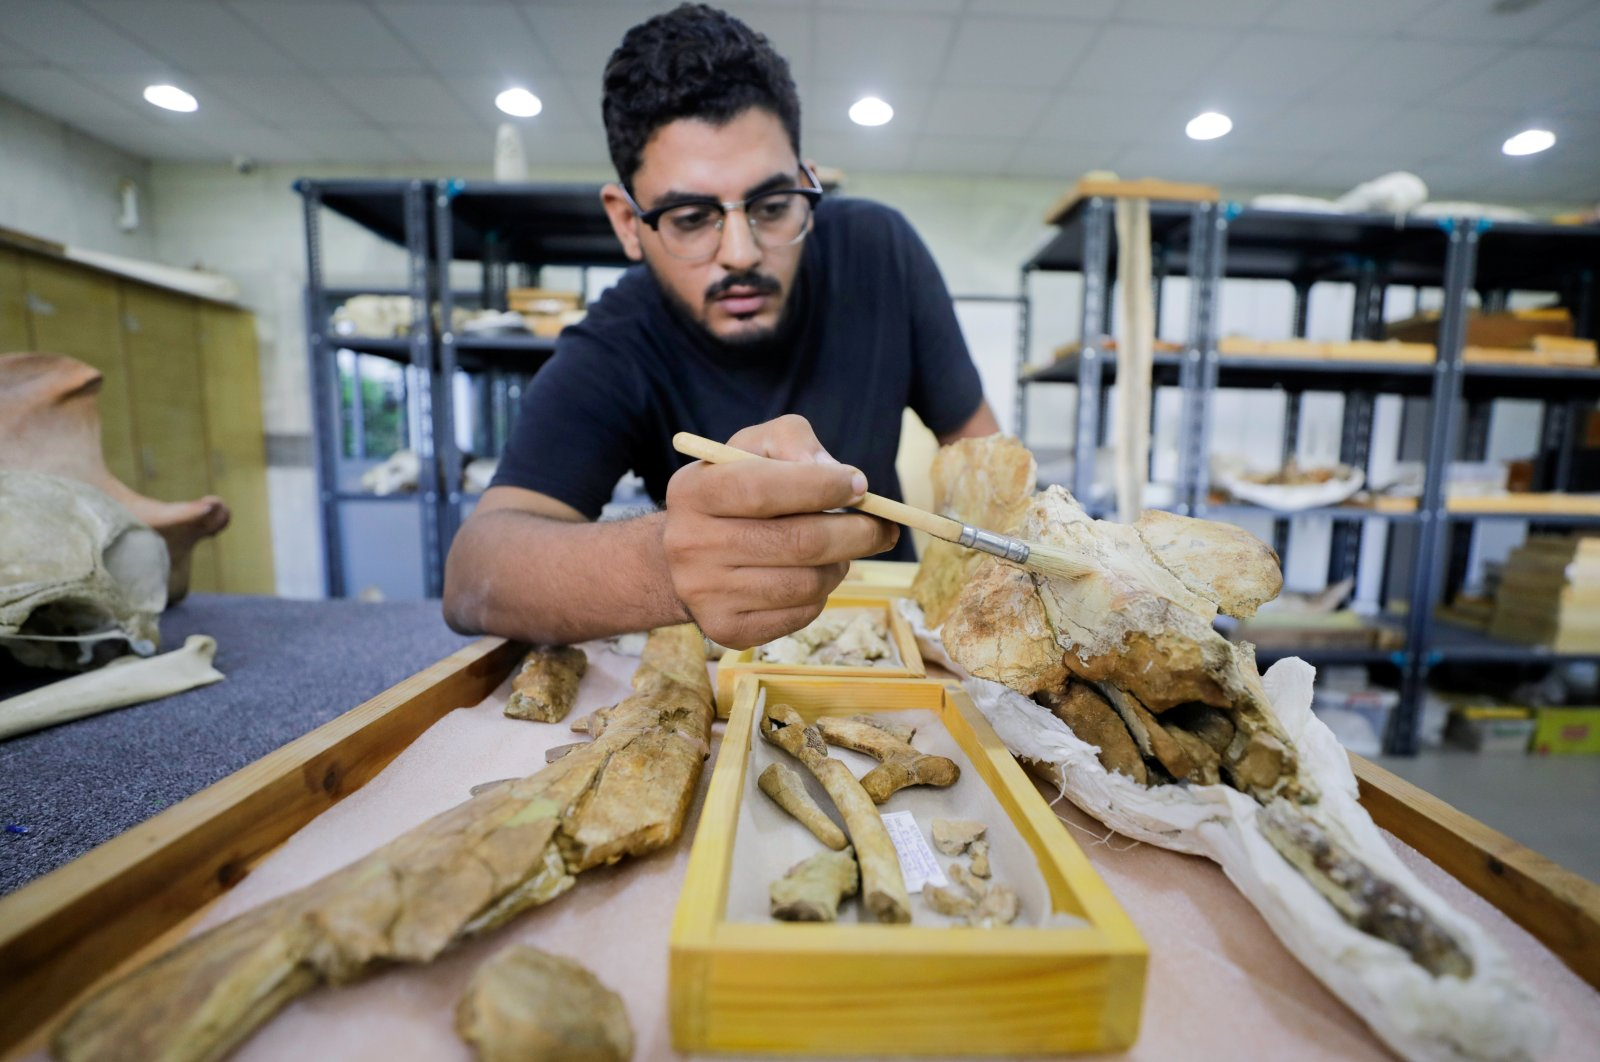 """Abdullah Gohar, a researcher at El Mansoura, university works on renovating the 43 million-year-old fossil of a previously unknown four-legged amphibious whale called """"Phiomicetus Anubis"""", that helps trace the transition of whales from land to sea, which were discovered in the Fayum Depression in the Western Desert of Egypt, near the town of El Mansoura, north of Cairo, Egypt August 26, 2021. (Reuters Photo)"""